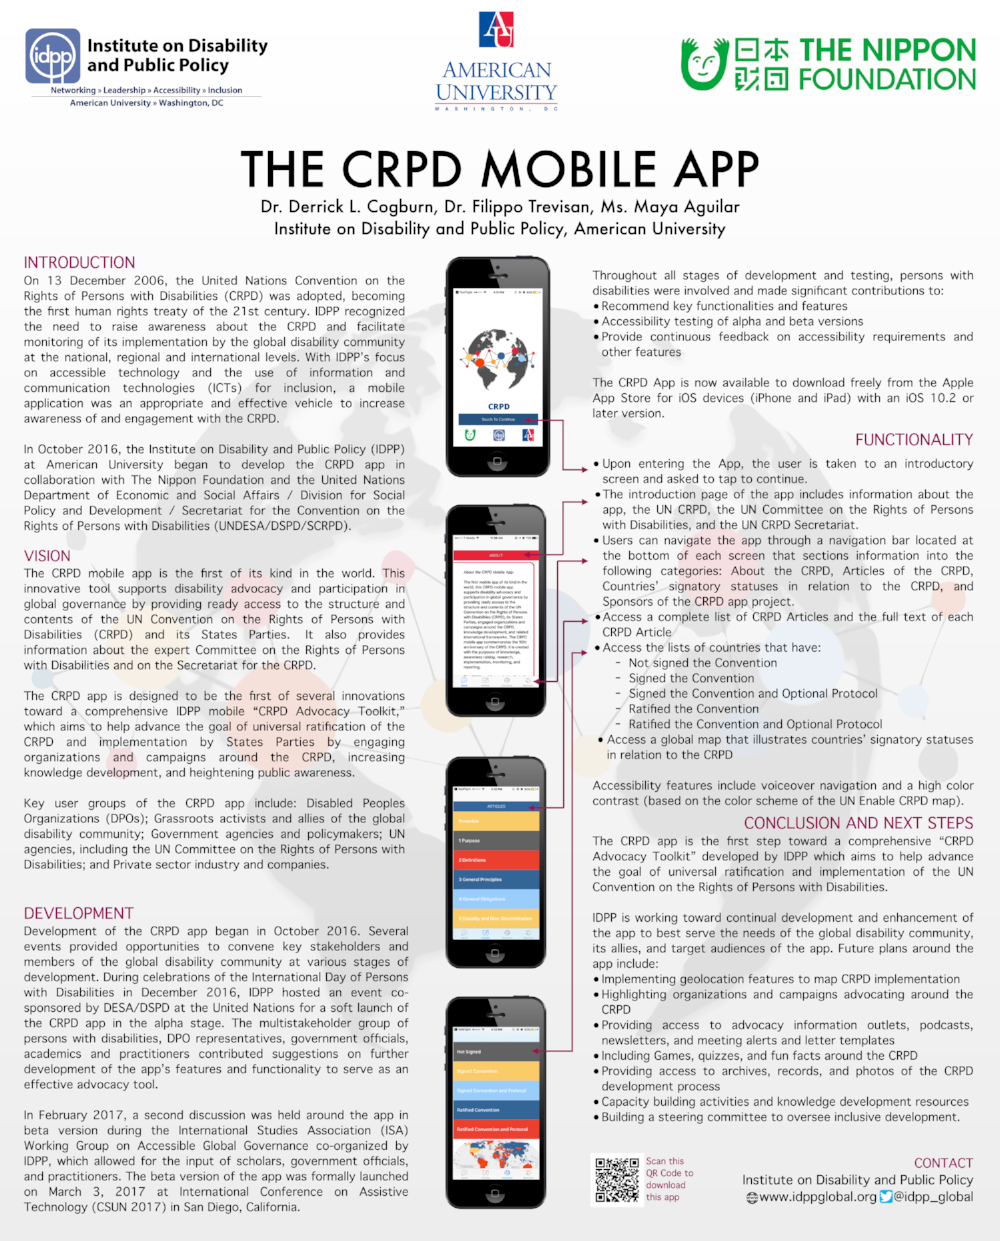 IDPP Presents Research & CRPD Mobile App at UMD Disability Summit